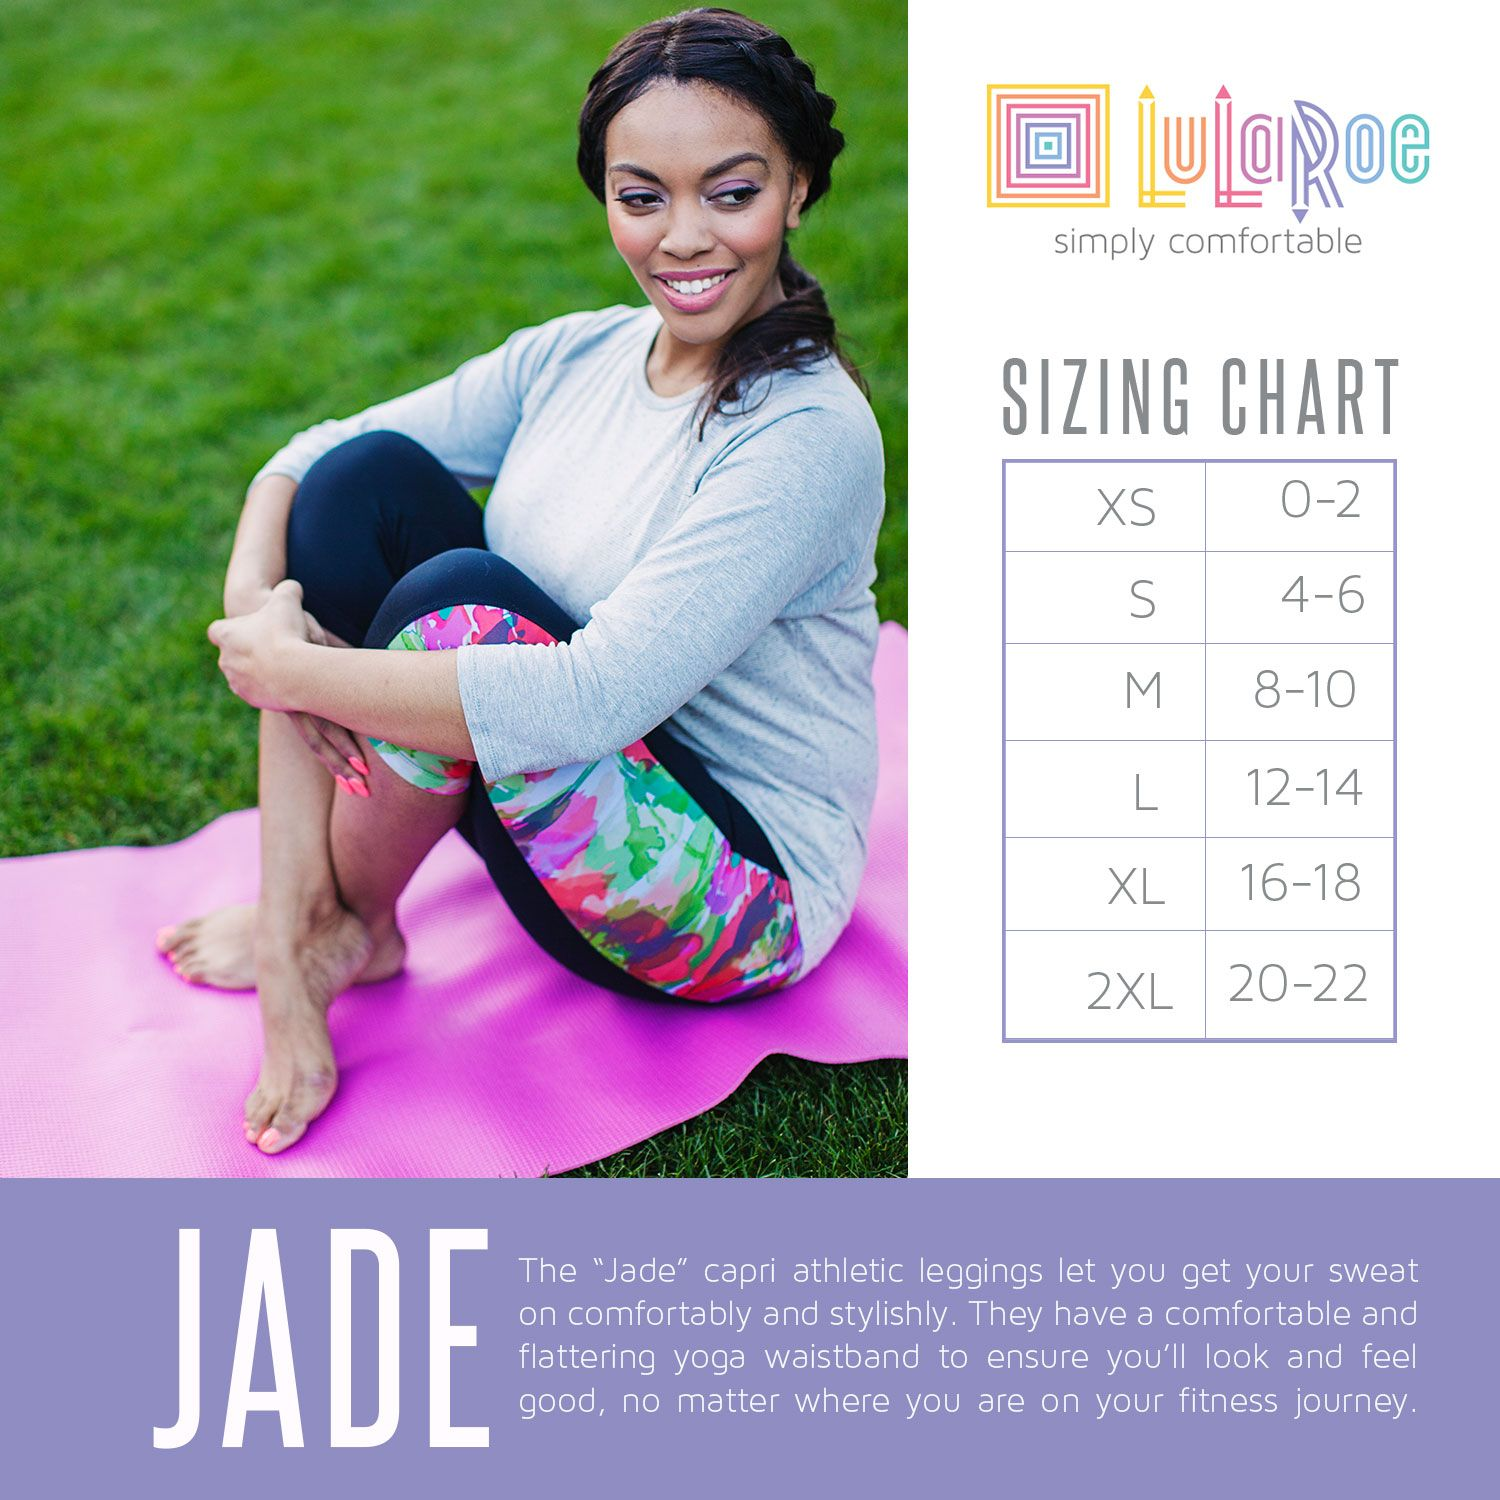 Lularoe Jade Sizing Chart Size Up One For A Looser Fit These Are Double Sched Capri Length Athletic Wear